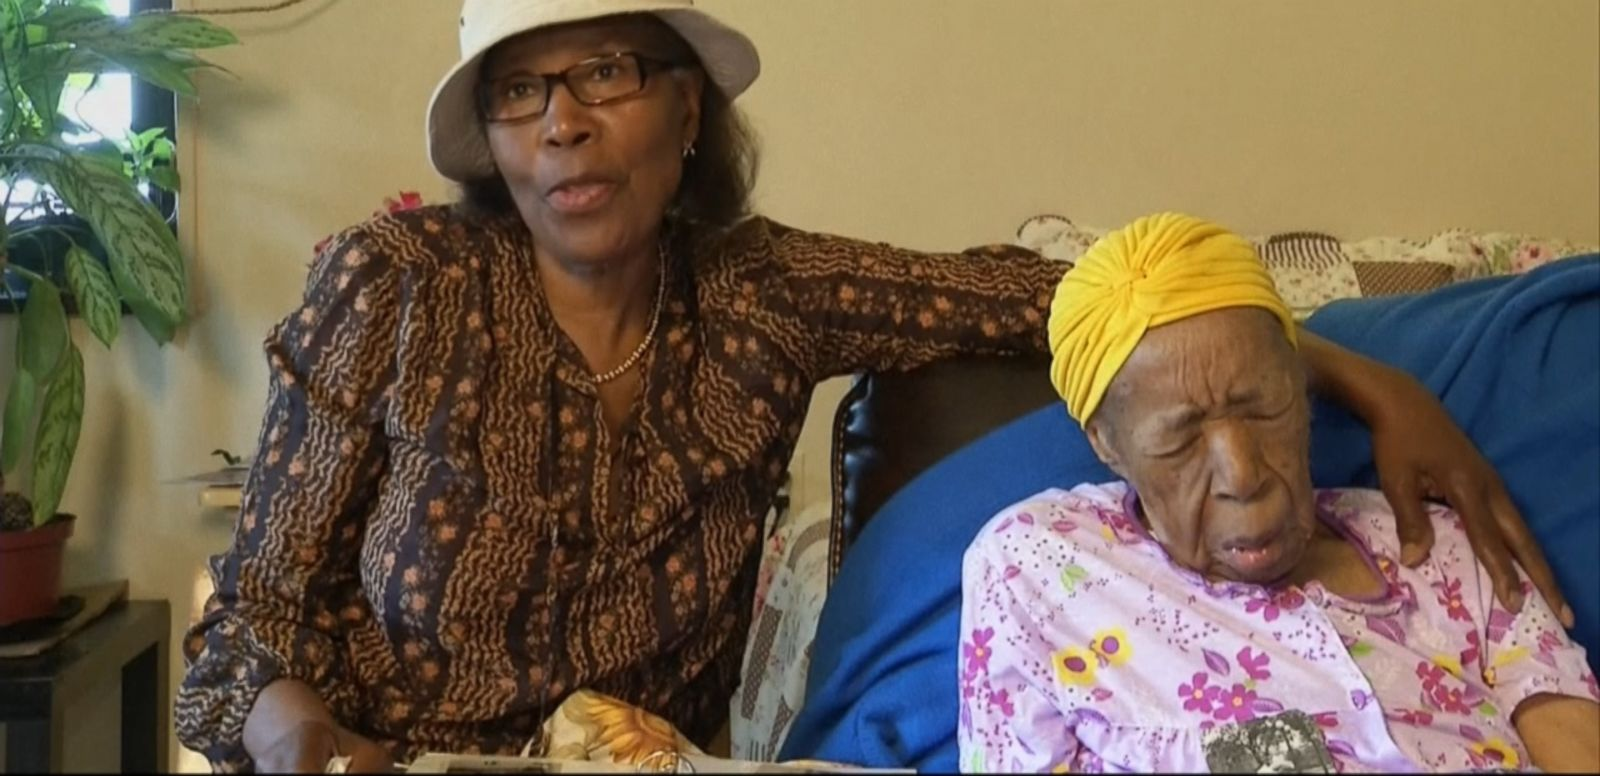 VIDEO: Susannah Mushatt Jones credits her long life on earth to plenty of sleep.